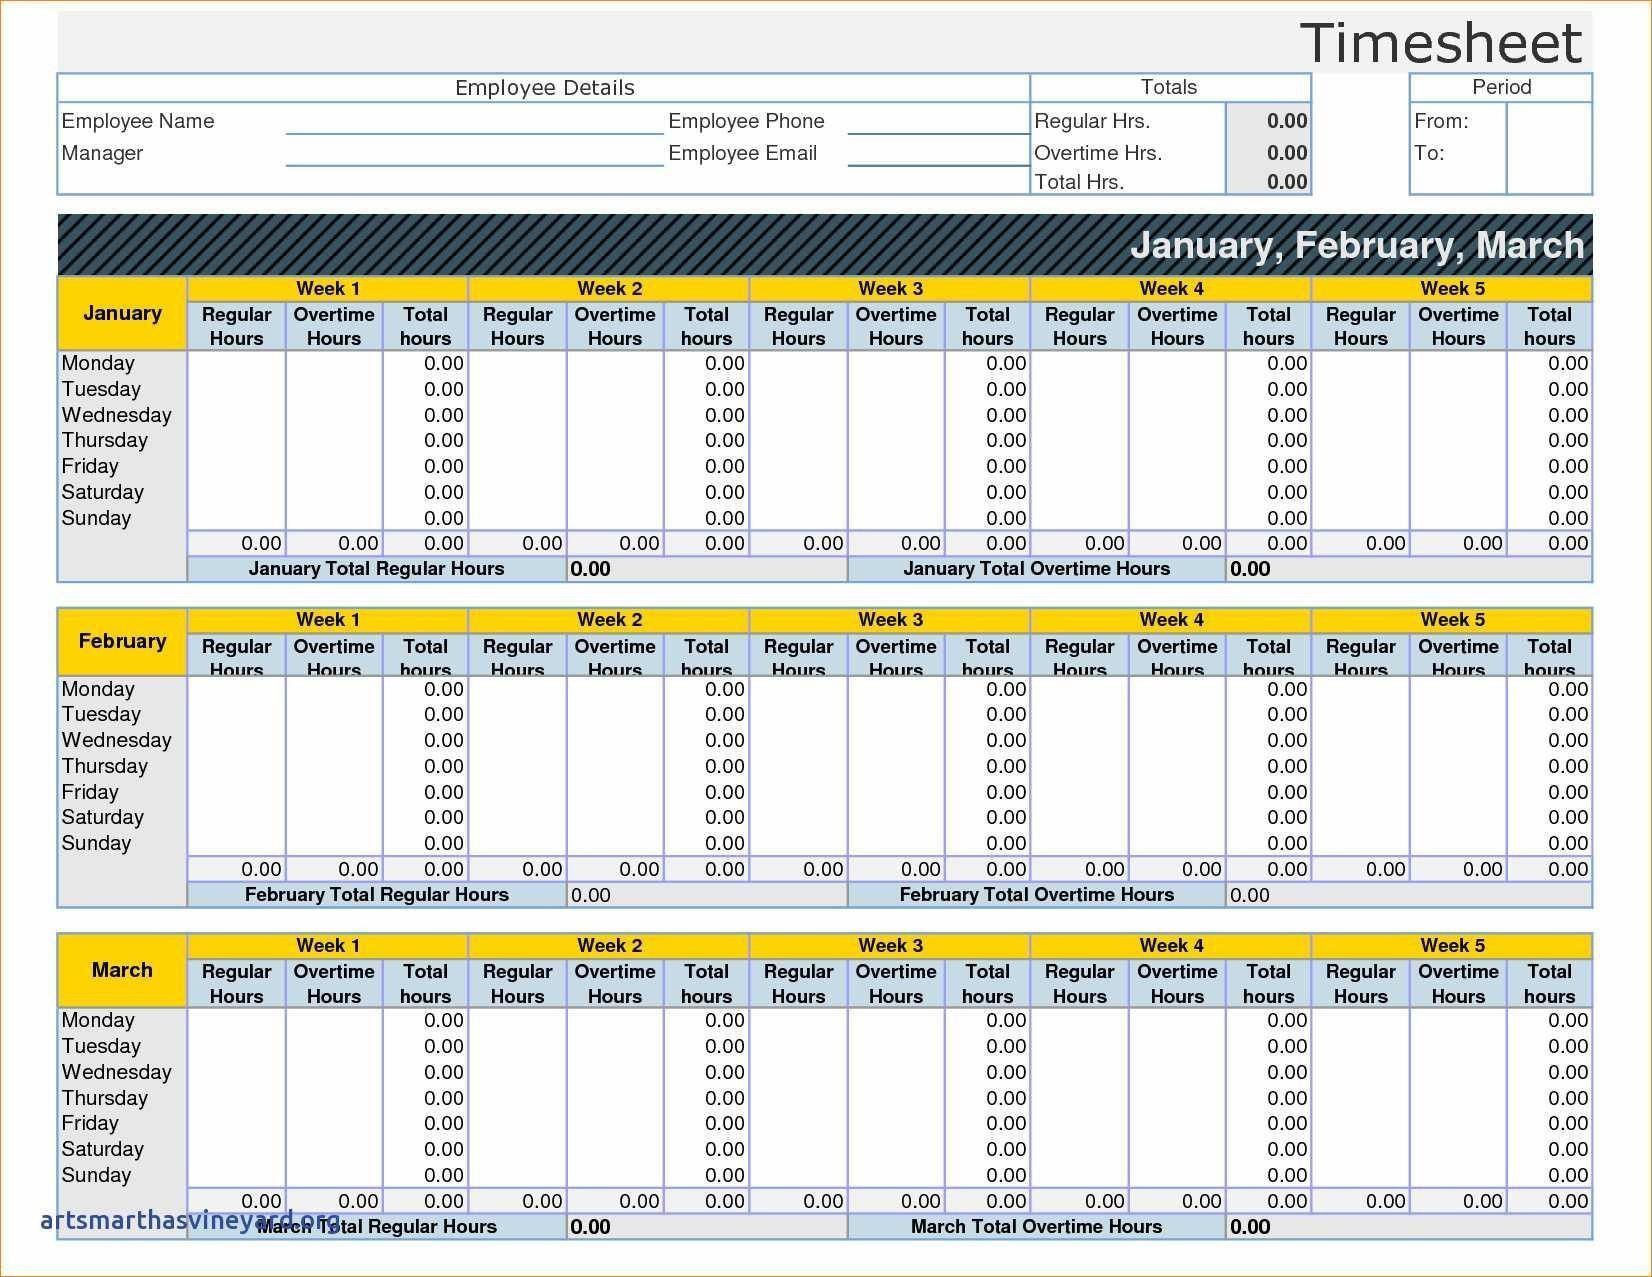 004 Exceptional Monthly Timesheet Excel Template Image  Multiple Employee Free Semi-monthly 2020Full